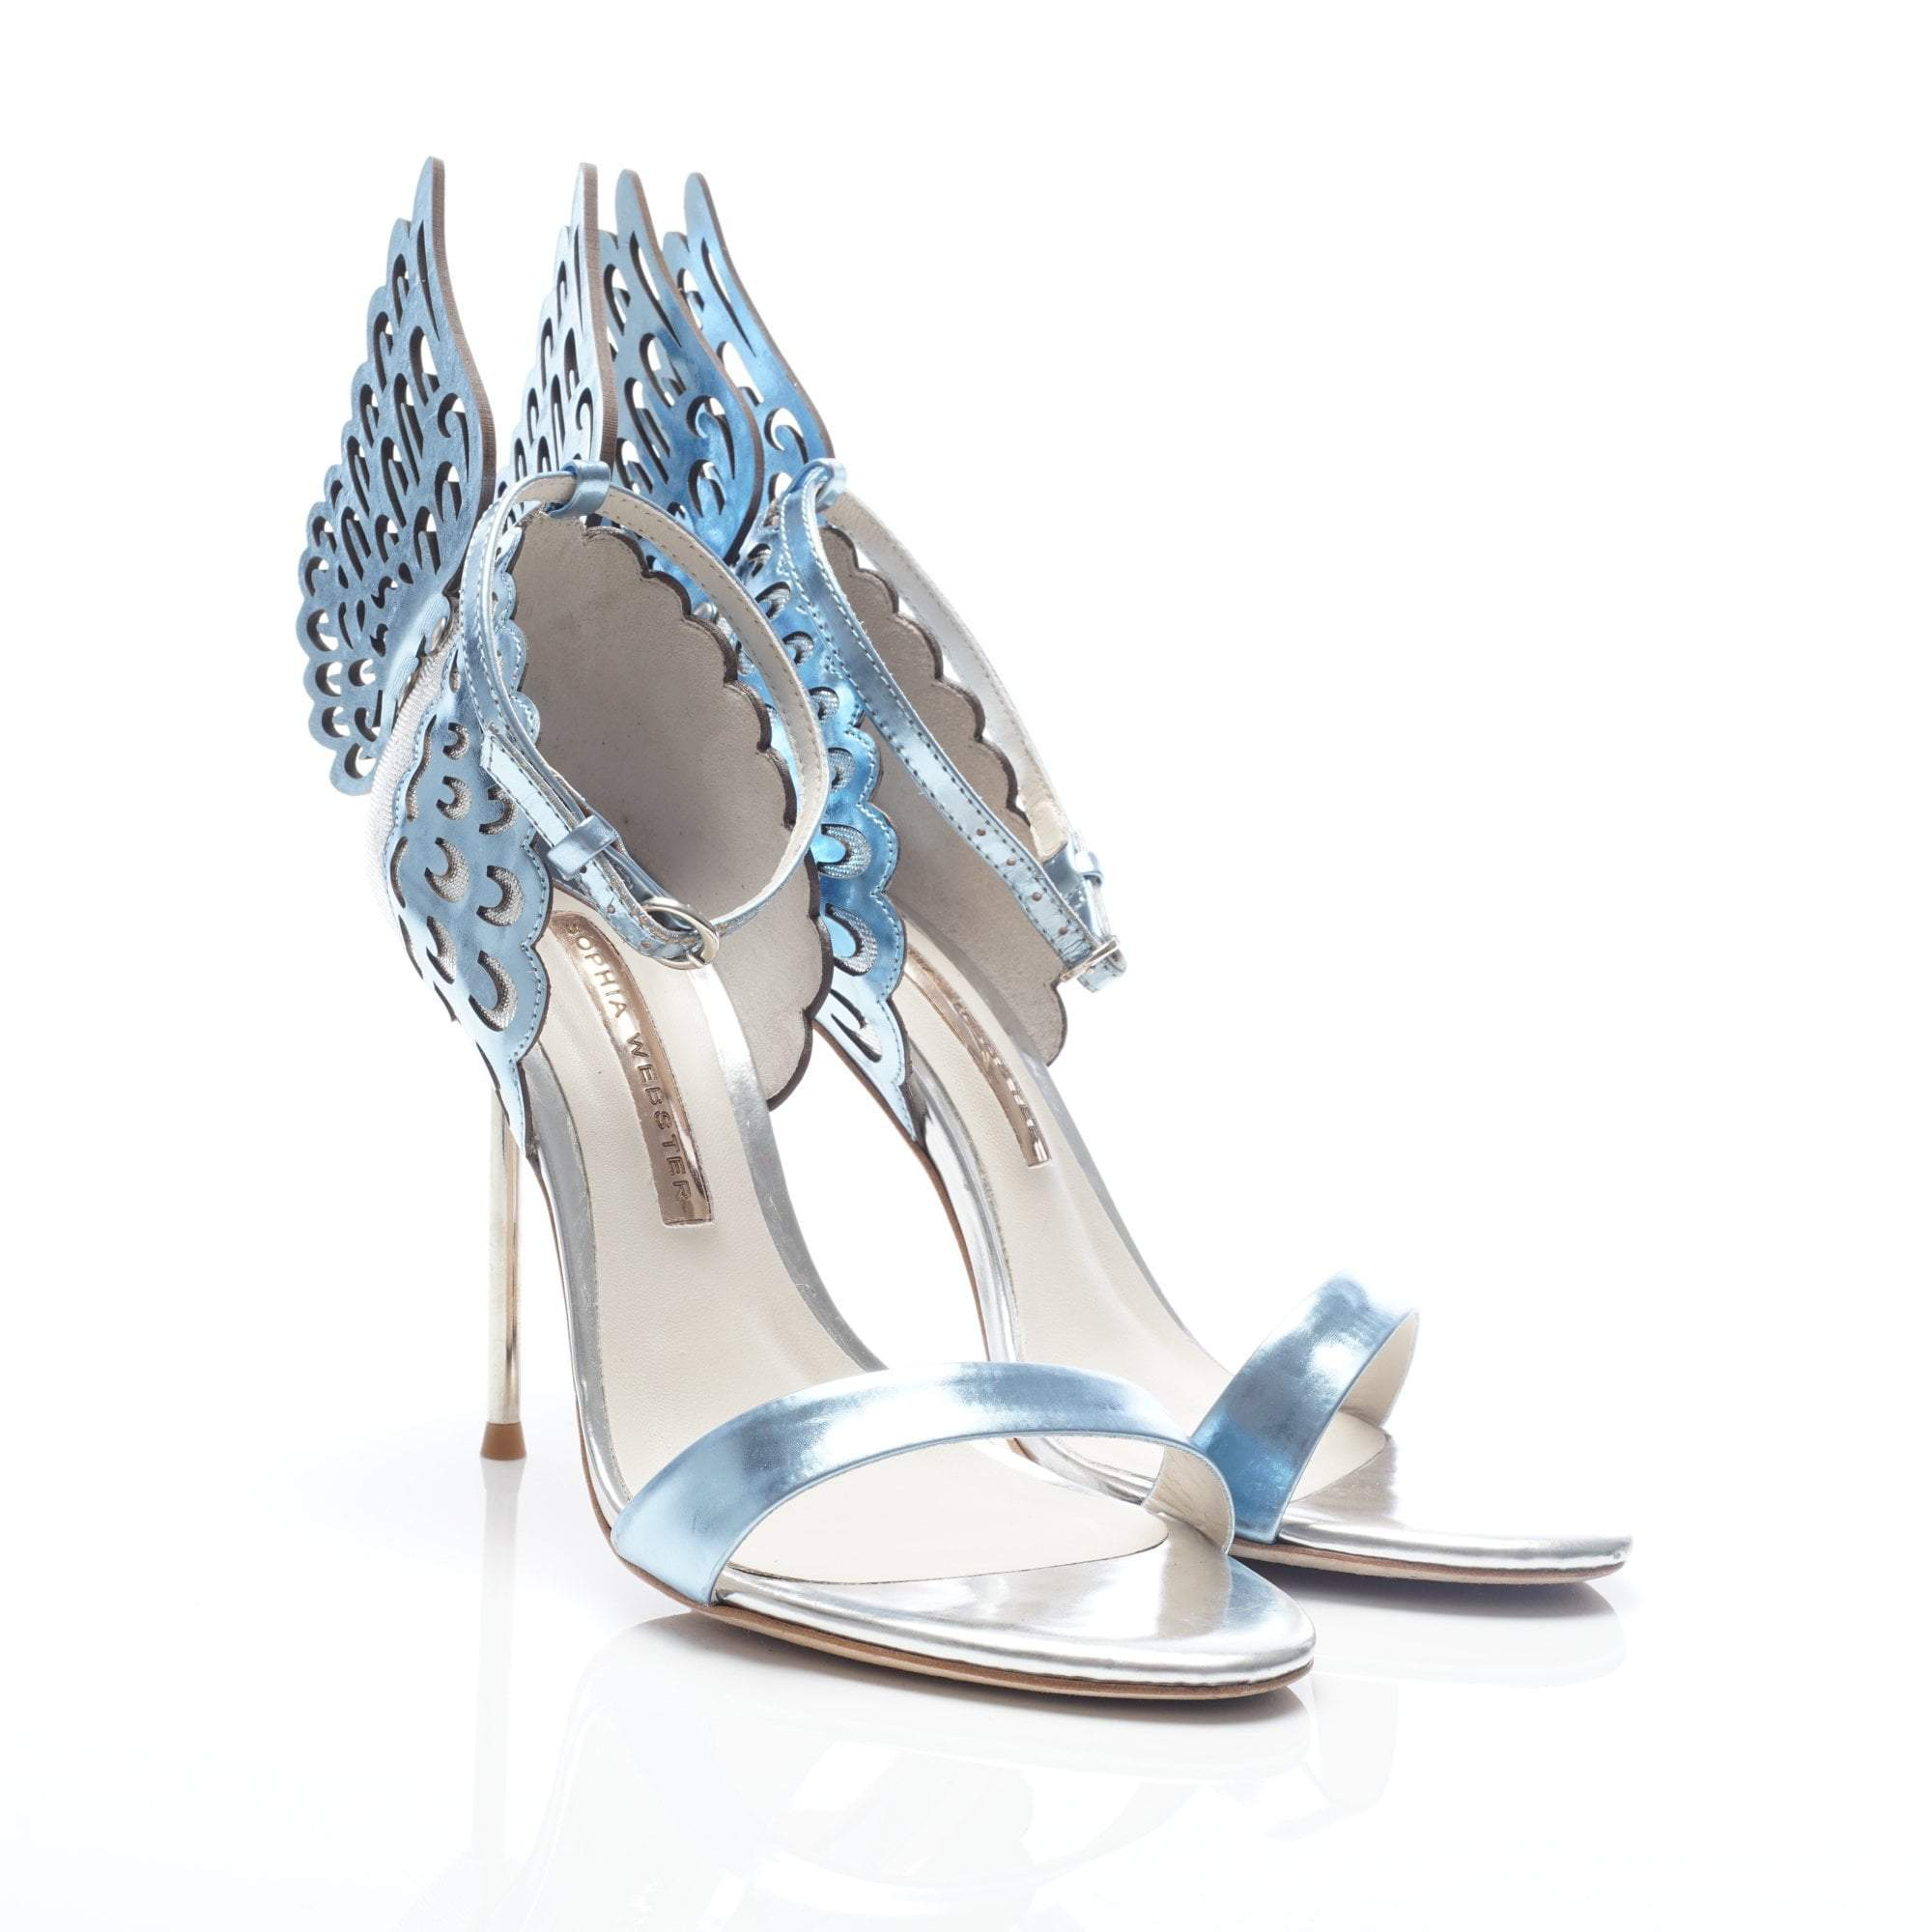 Sophia Webster Evangeline D'Orsay Angel-wing Leather Sandal Heels